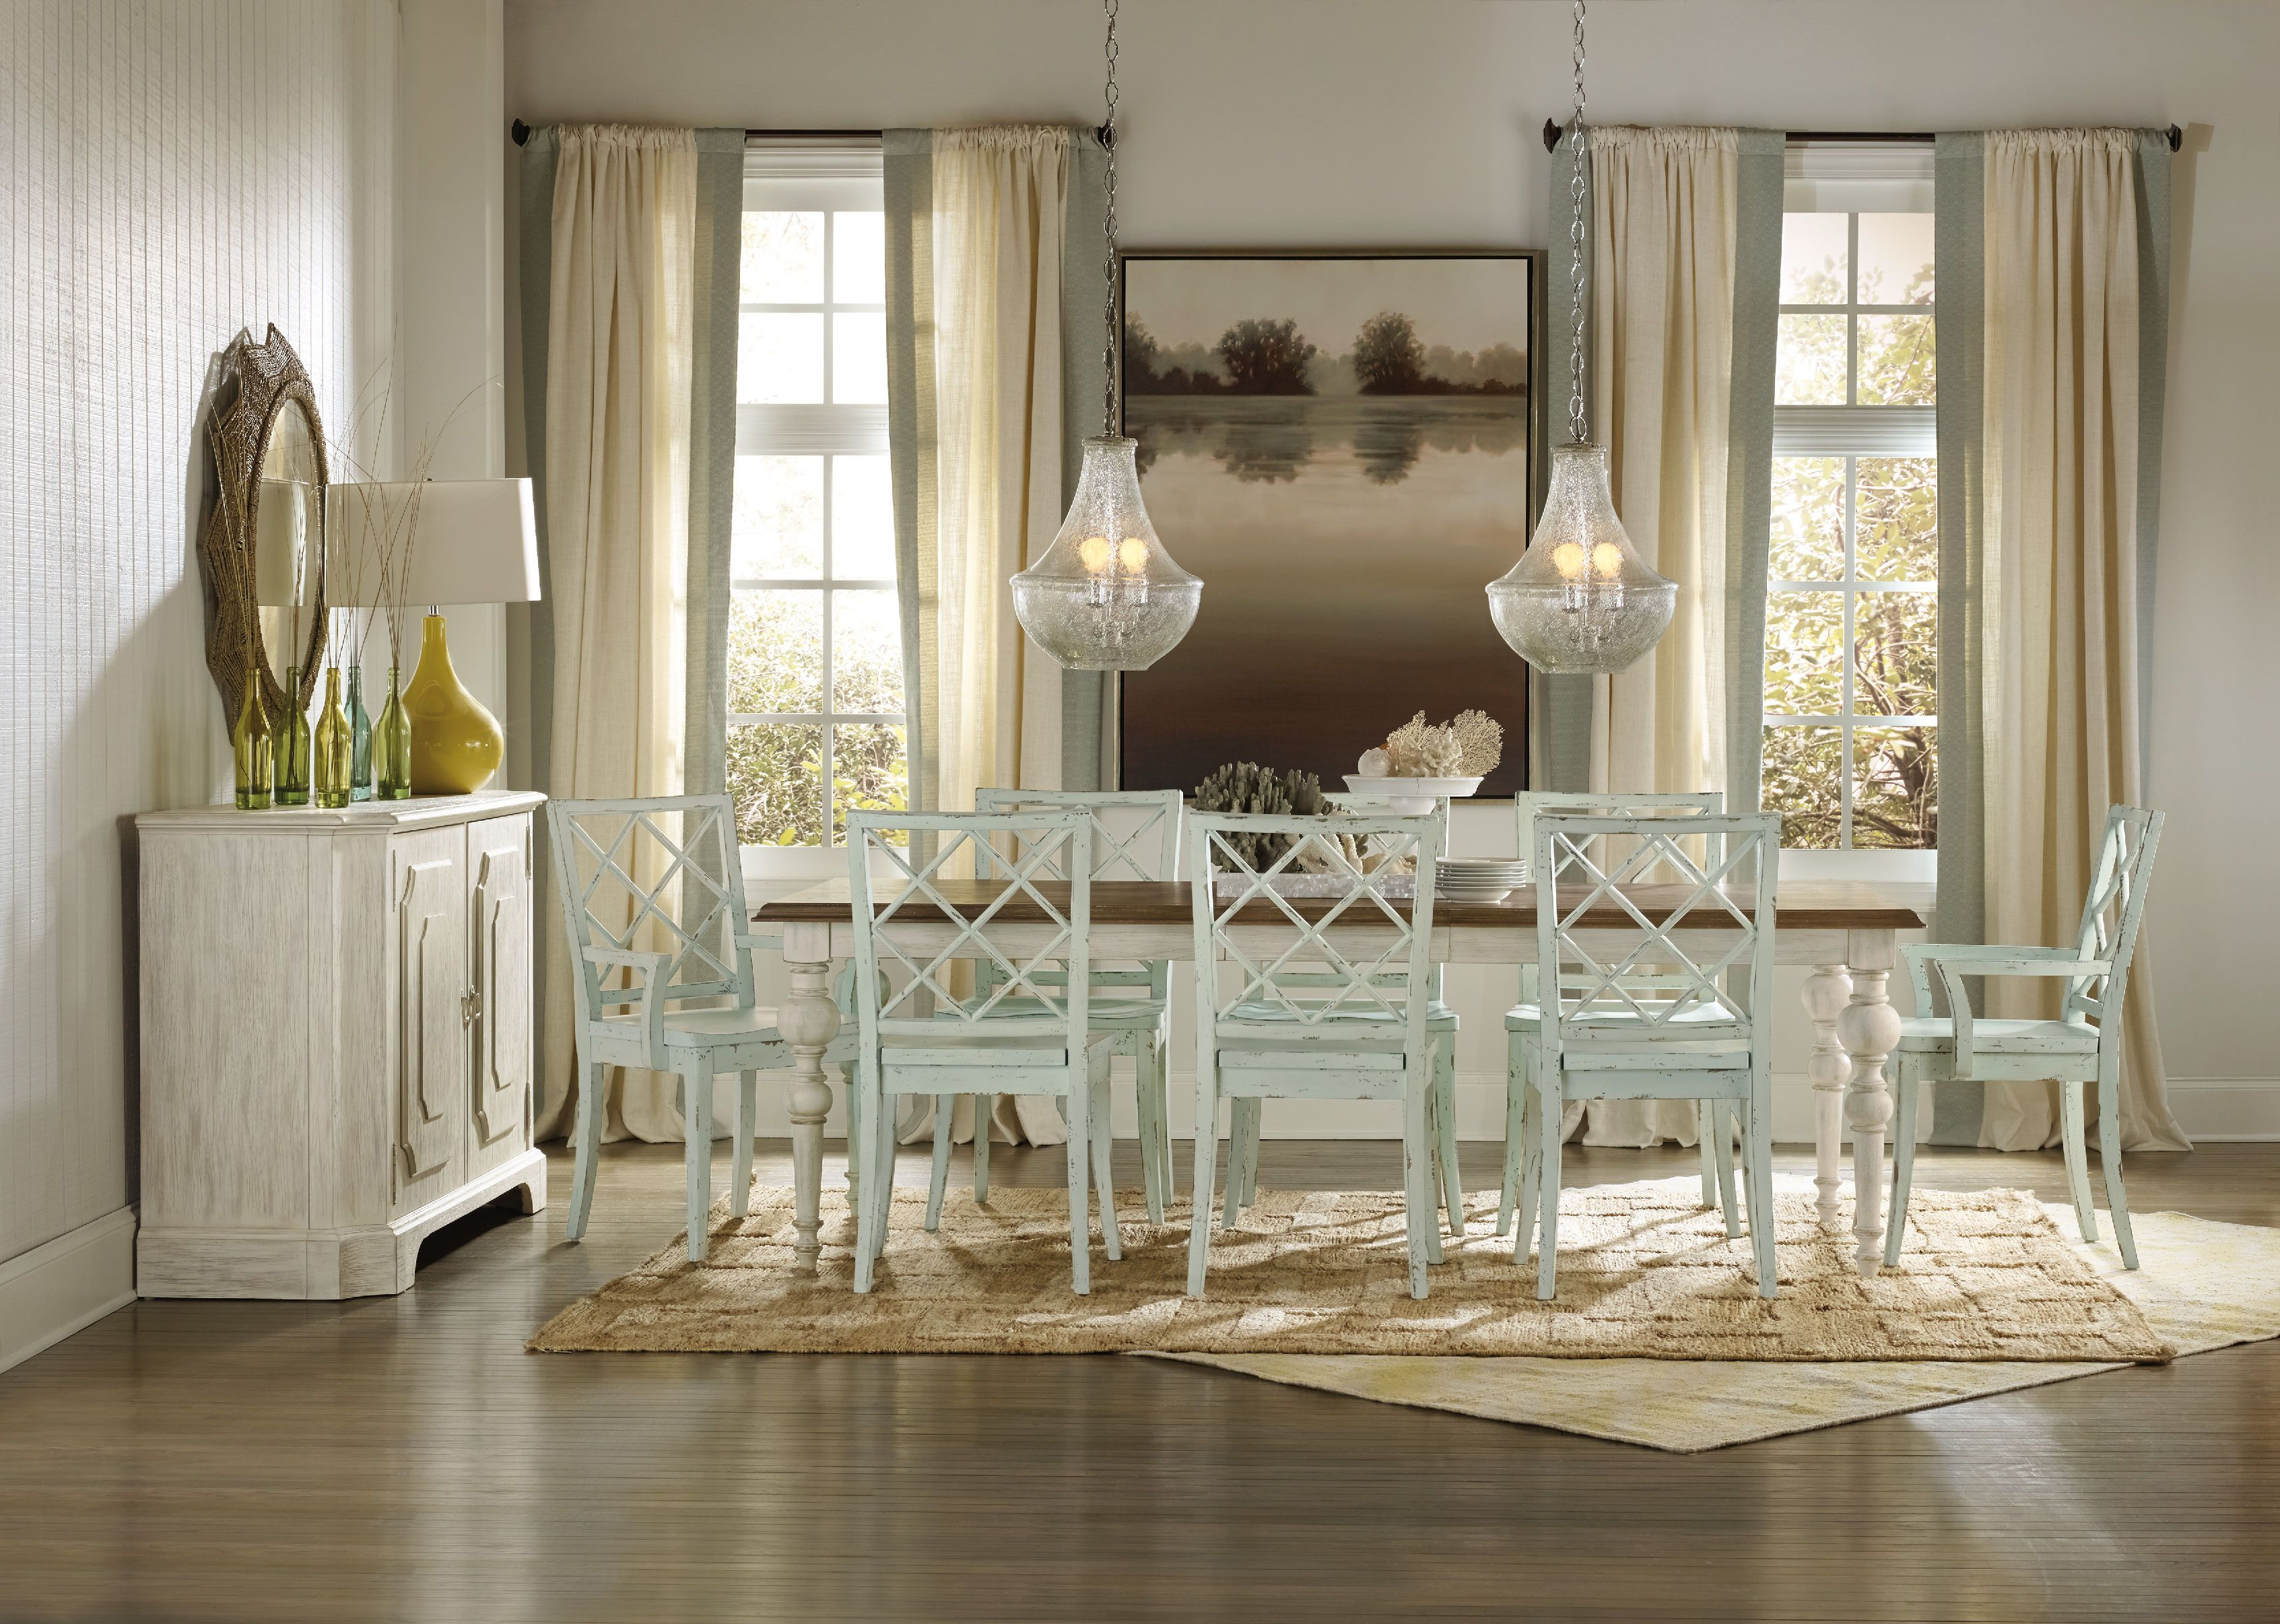 Hooker Furniture Dining Room Sunset Point Rectangle Dining Table Inspiration Rectangle Dining Room Tables Design Ideas